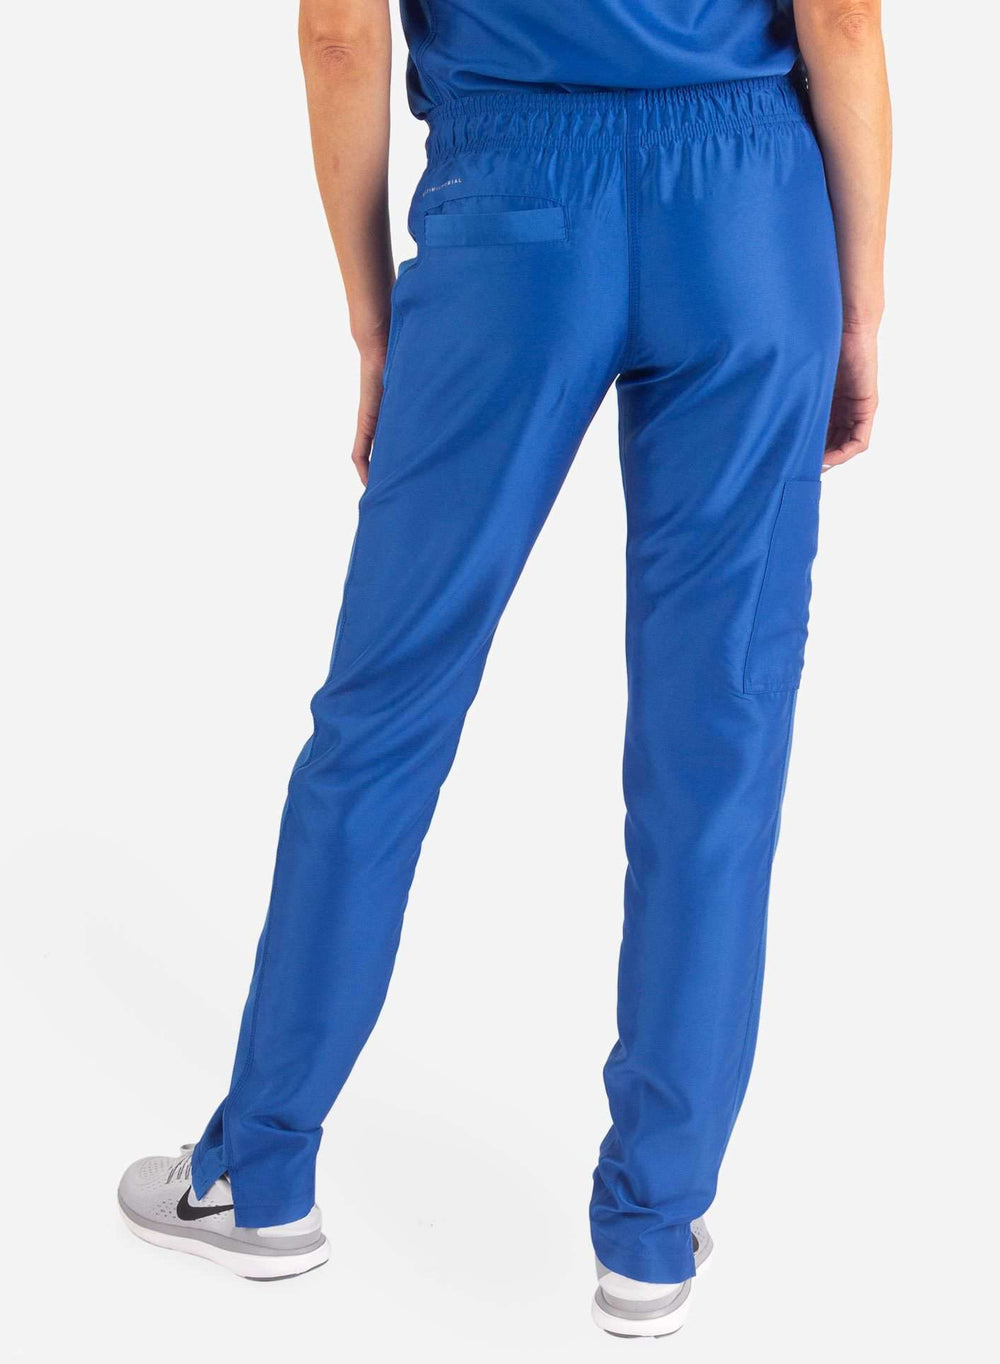 Women's Slim Fit Scrub Pants in Royal Blue back